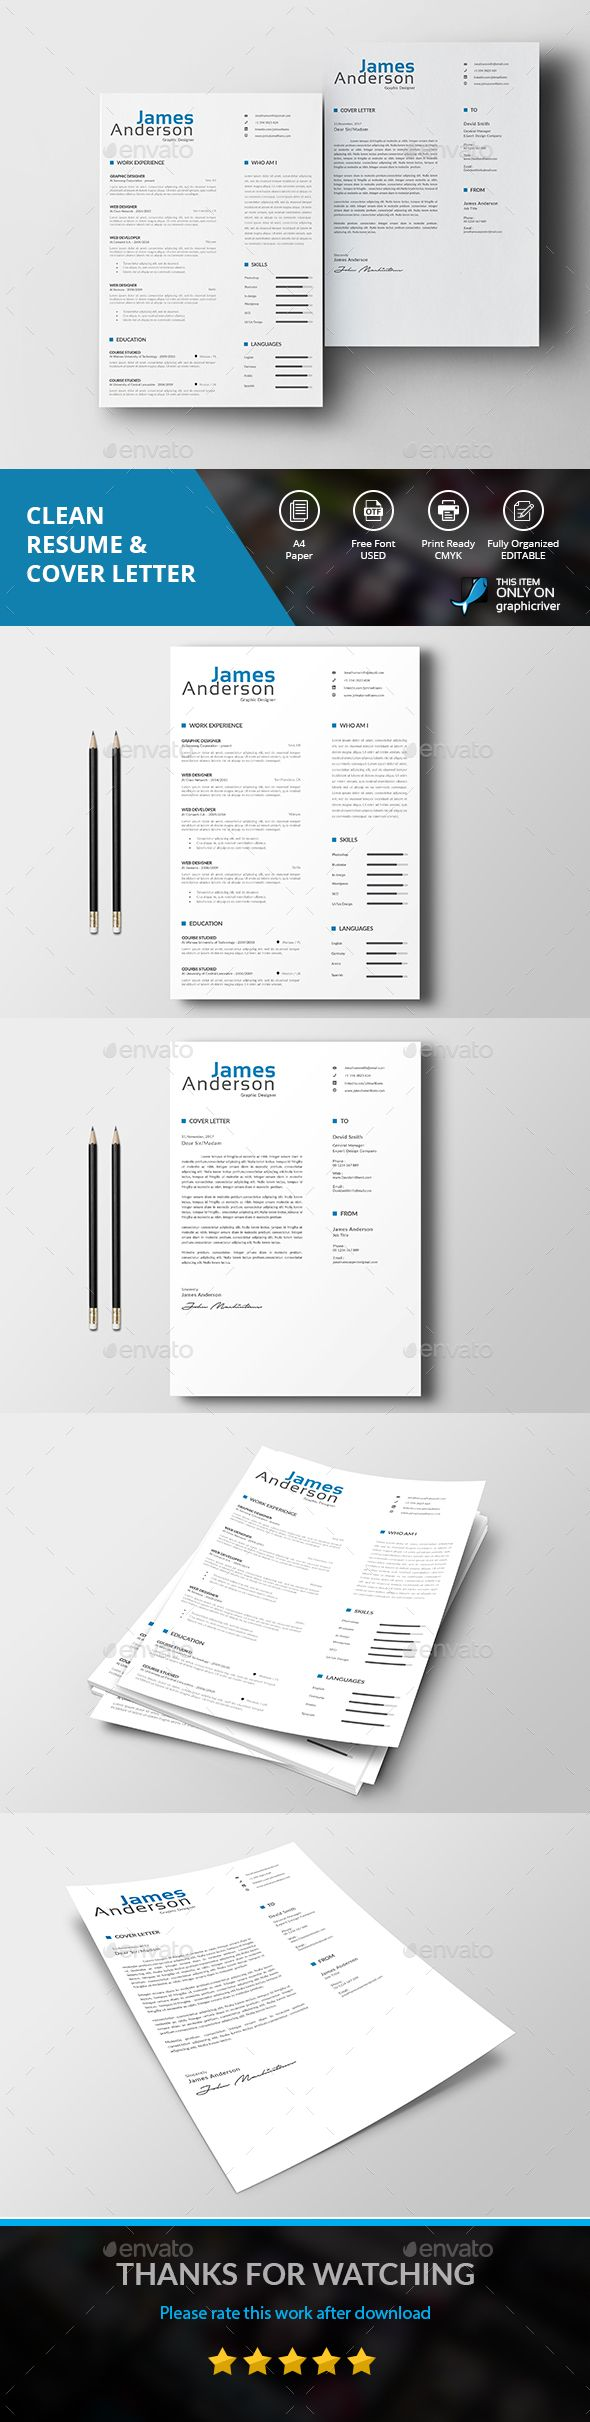 best ideas about resume cover letter template resume cover letter